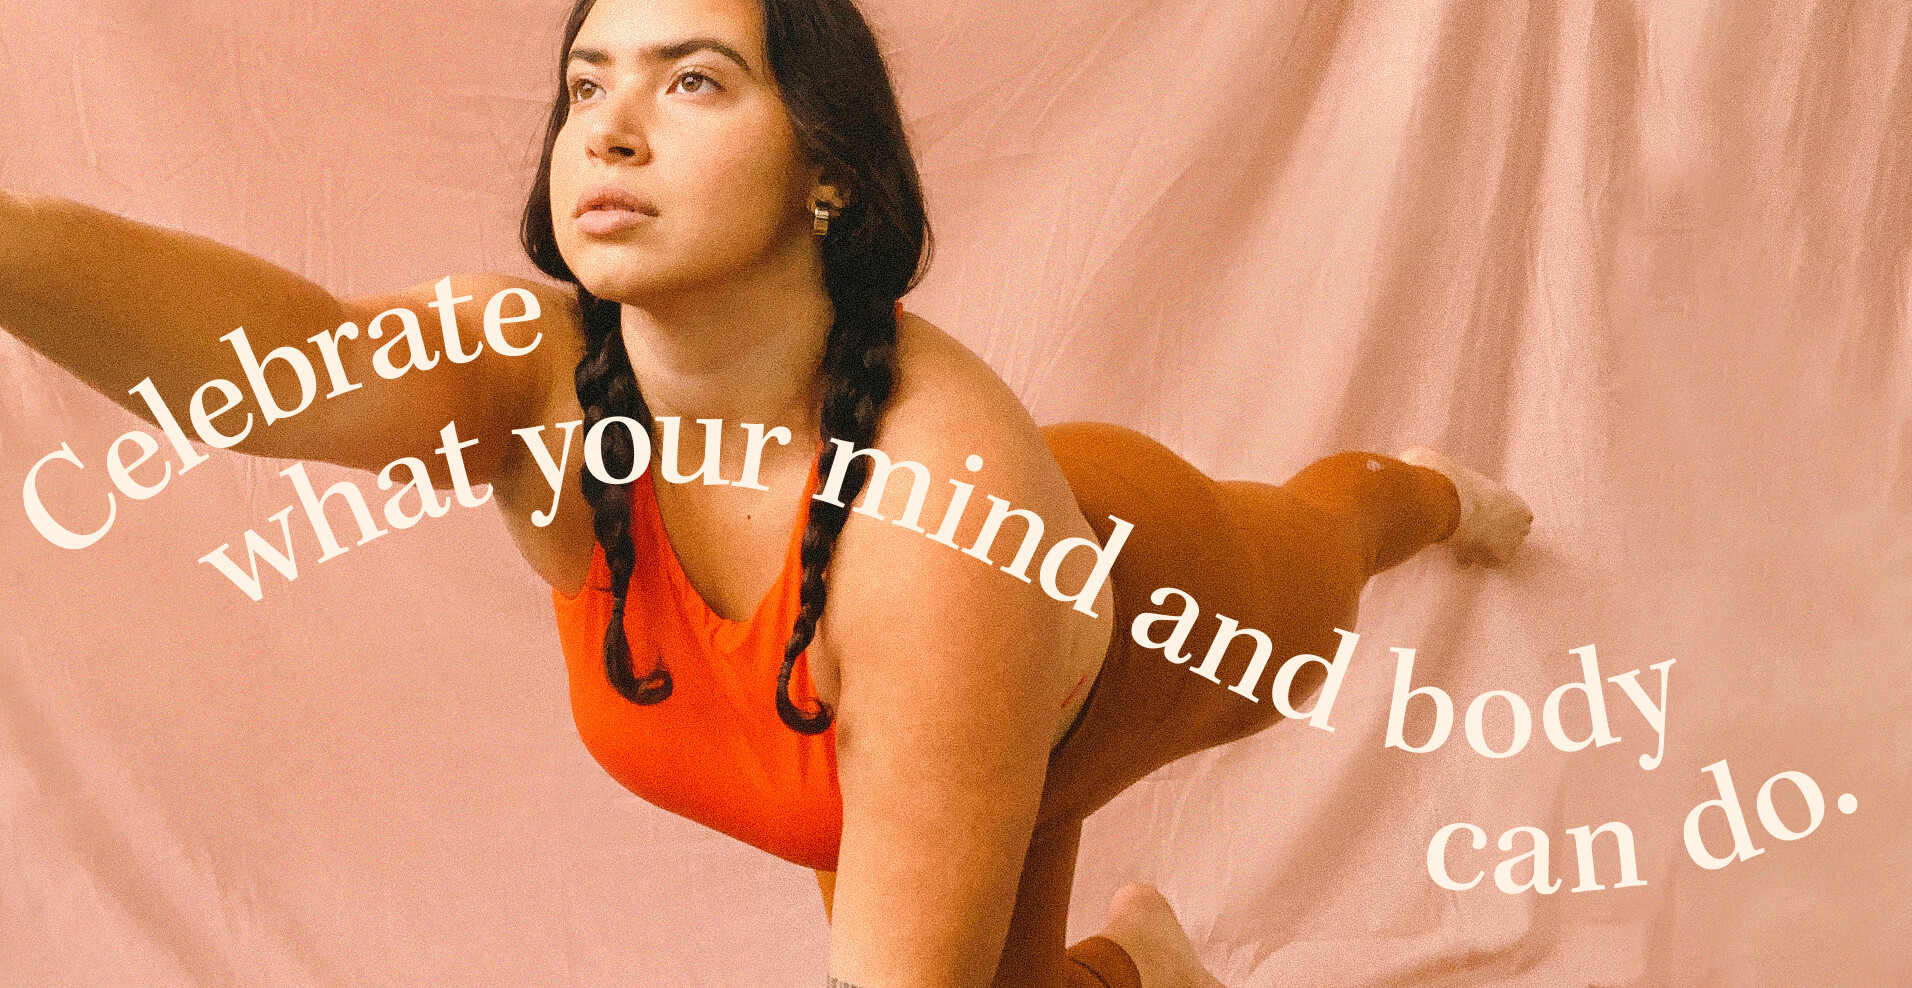 B3 30-day challenge promotional photo with a woman doing yoga and an inspirational quote